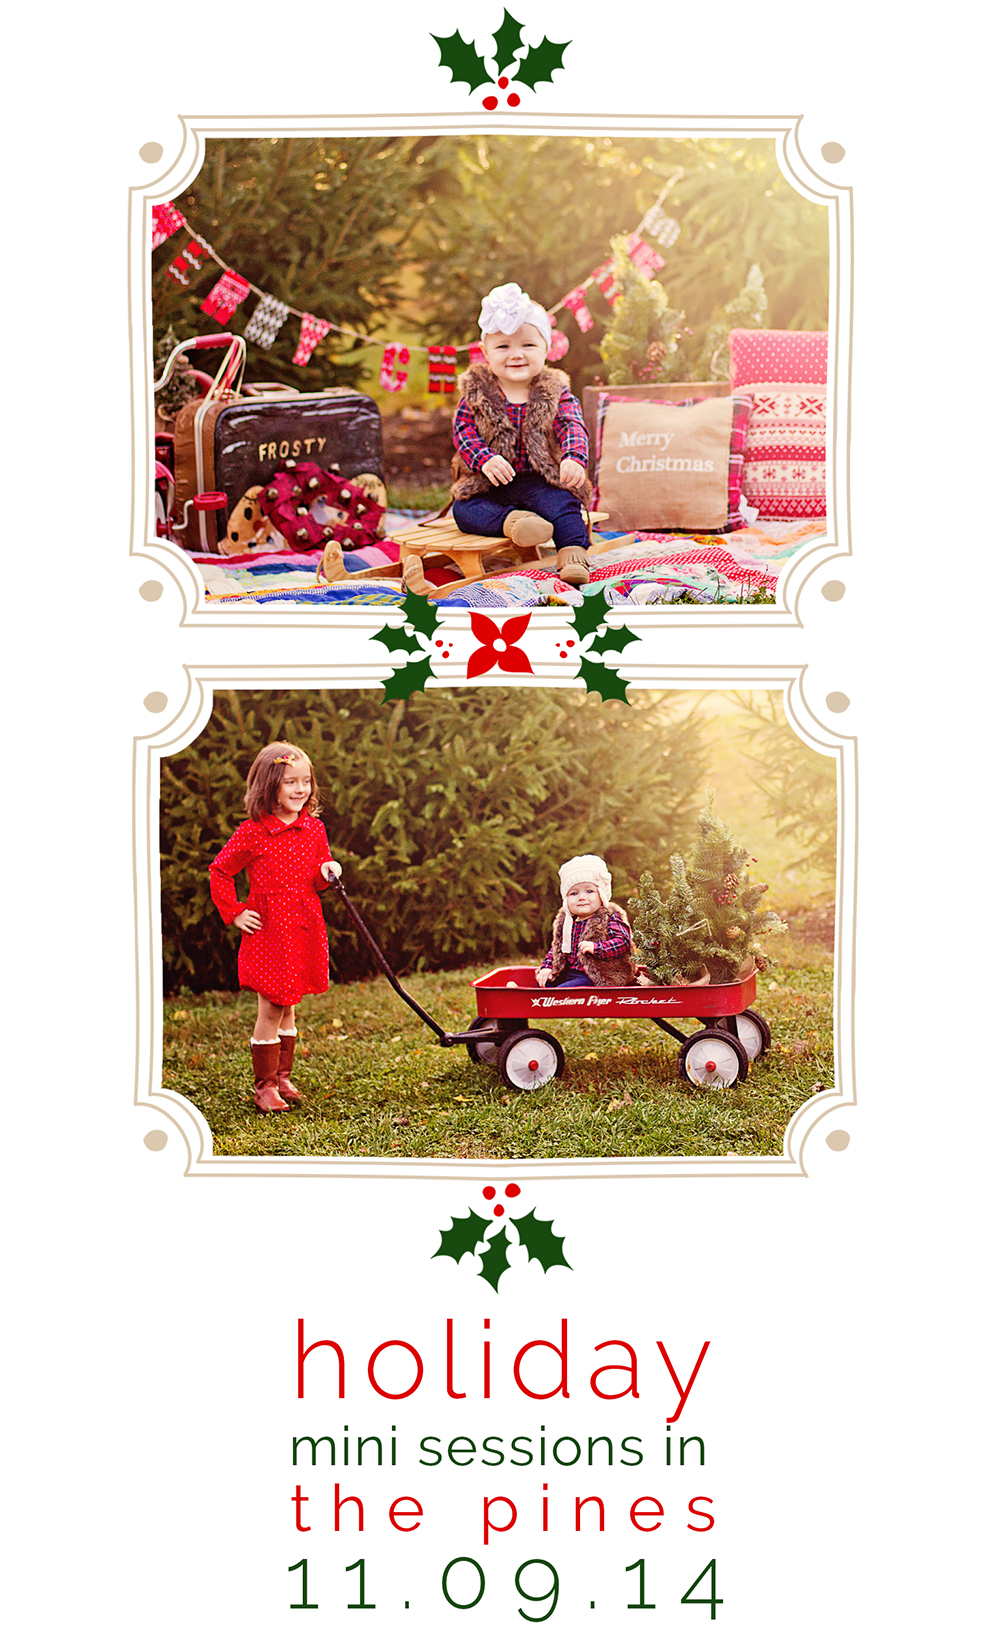 dayton ohio christmas mini sessions holiday photography 1.jpg